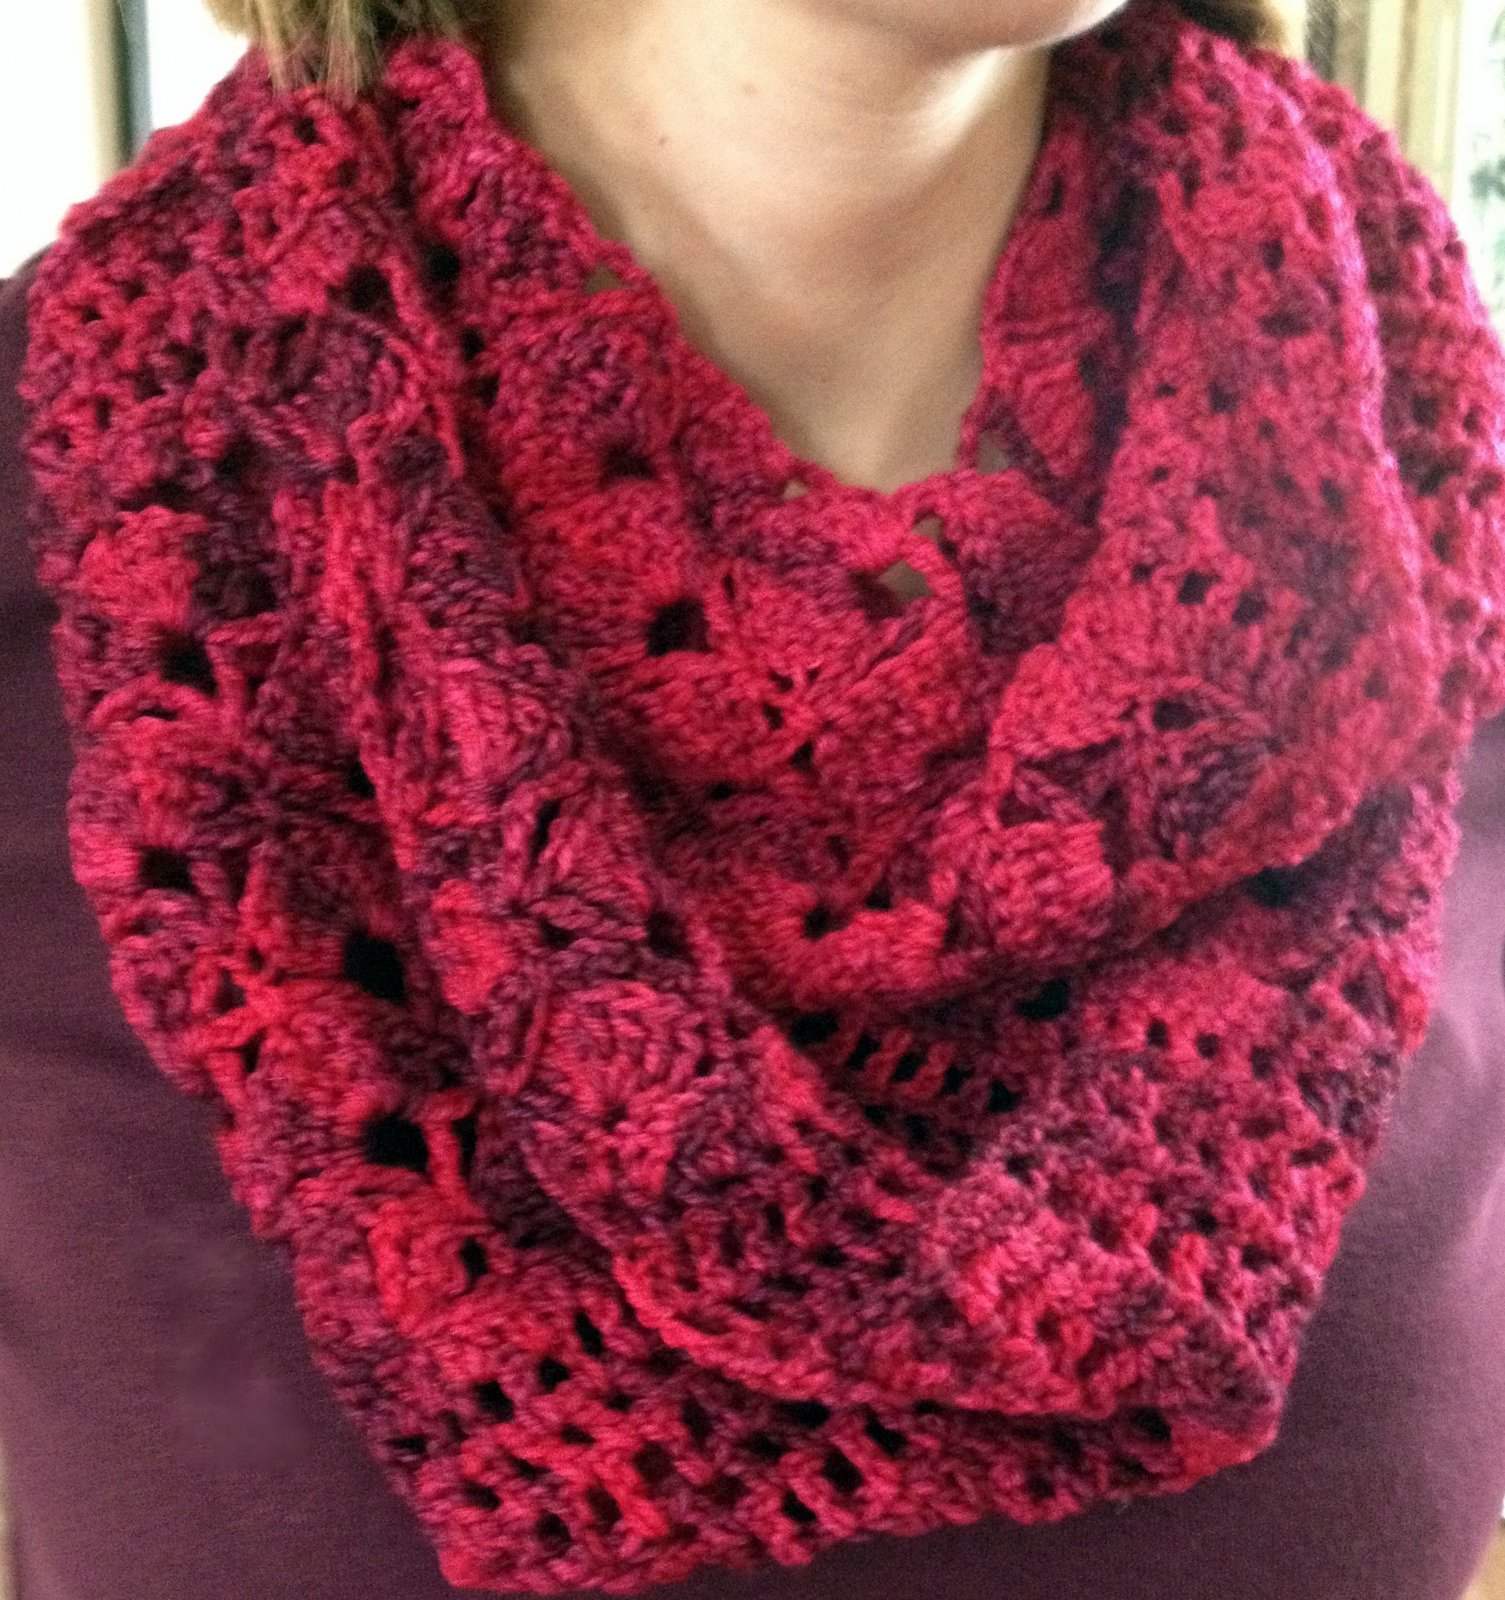 Knitting Patterns For Scarves Using Sock Yarn : Crochet Infinity Scarf Stitch4eveR